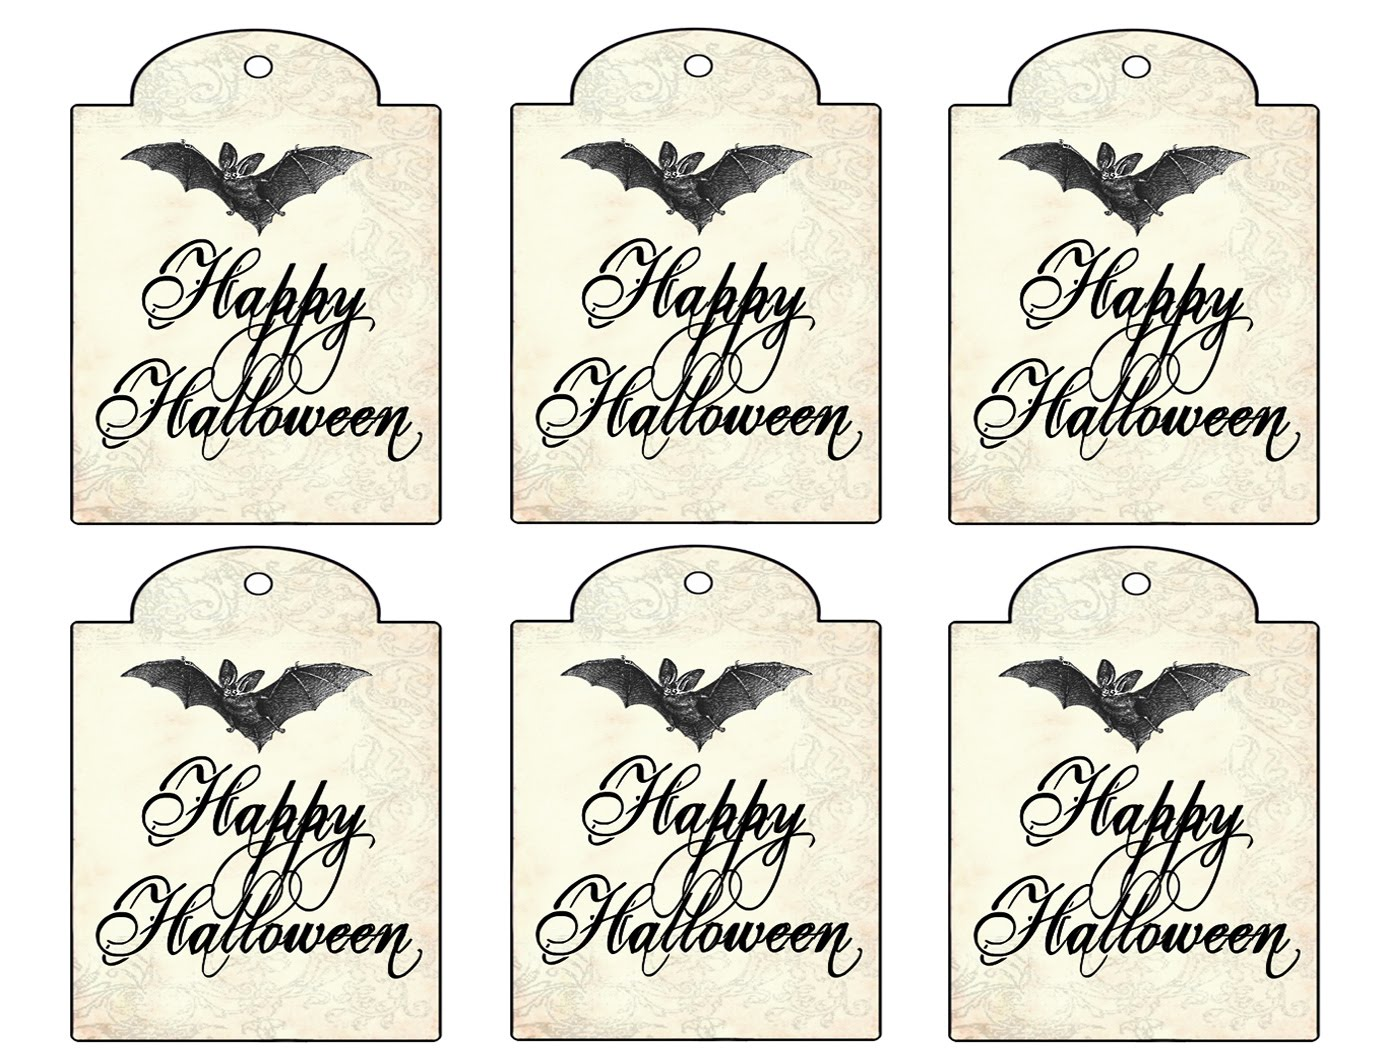 10 Of The Best Halloween Gift Tags For You Kittybabylove Com